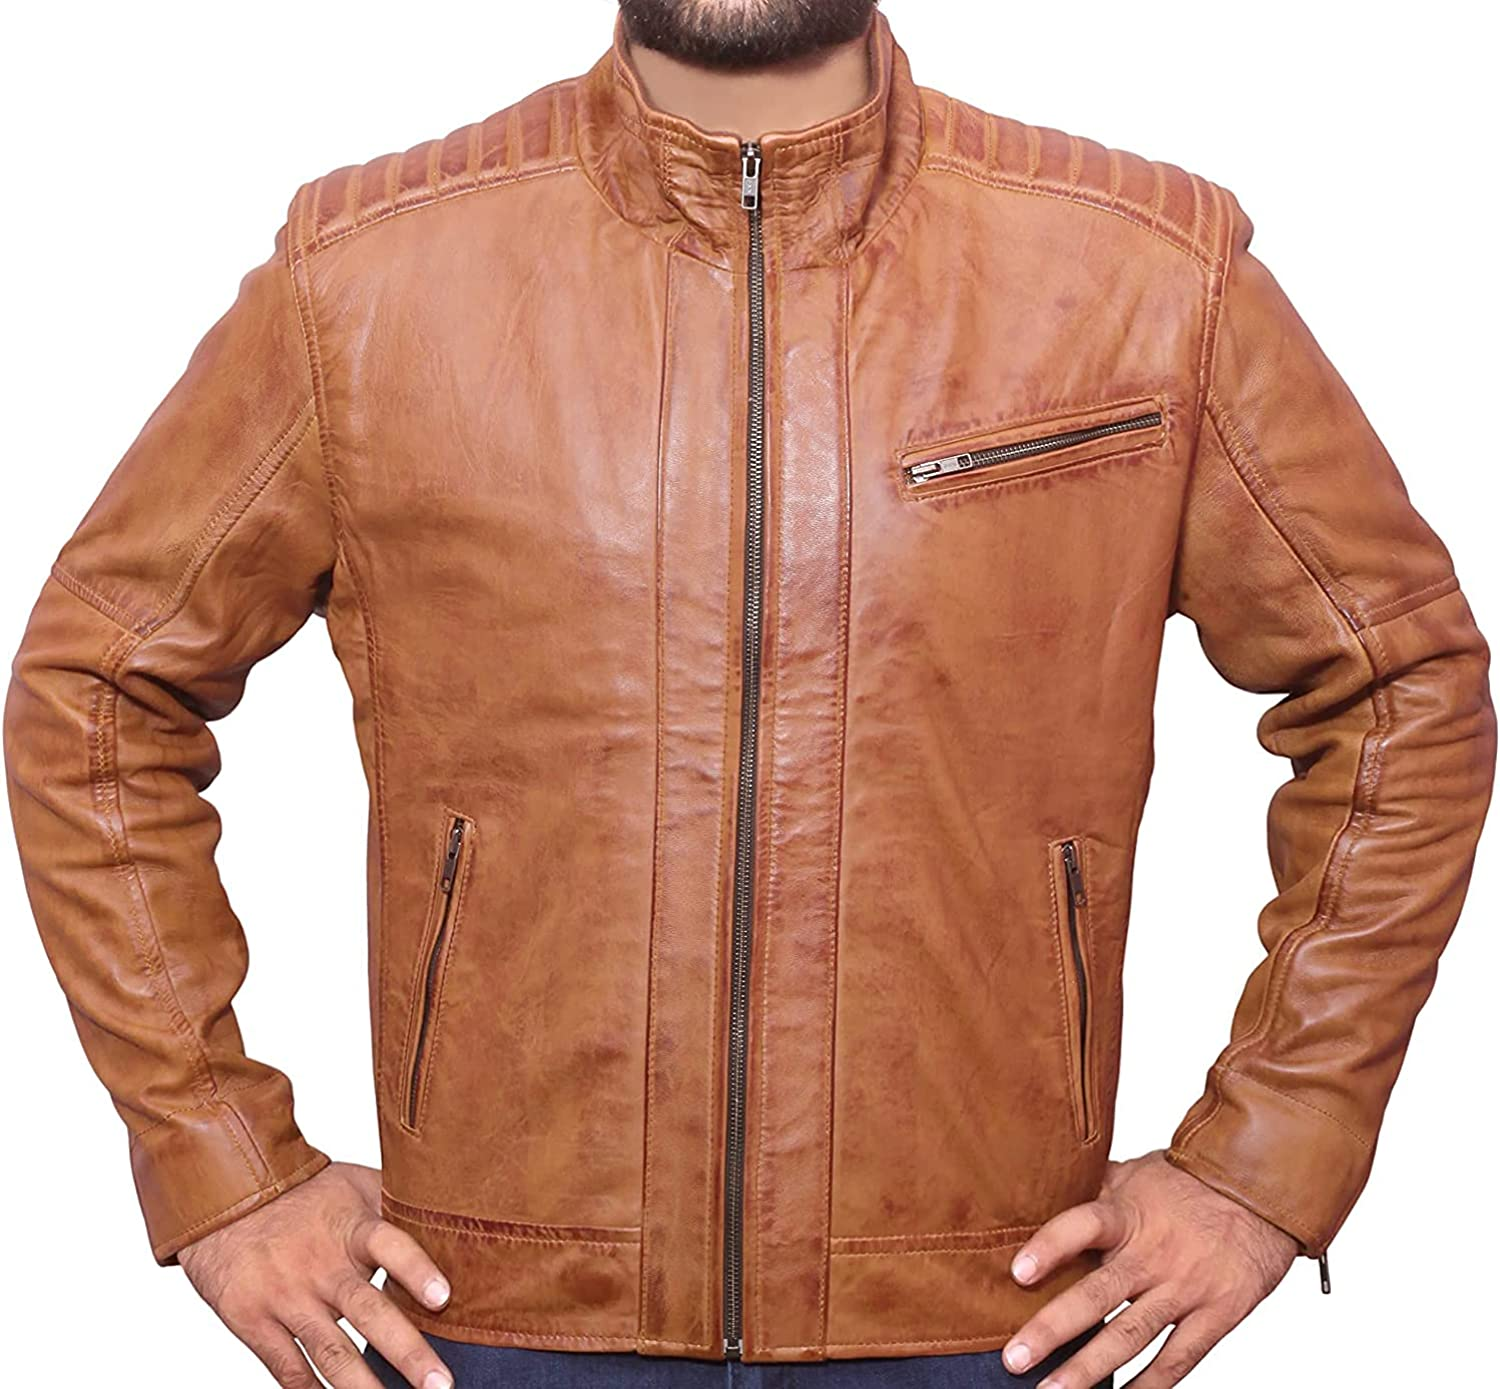 Men's Fashion Antique Brown Stylish Motorcycle Genuine Lambskin Leather Jacket For Men - AS/NZ-721901002